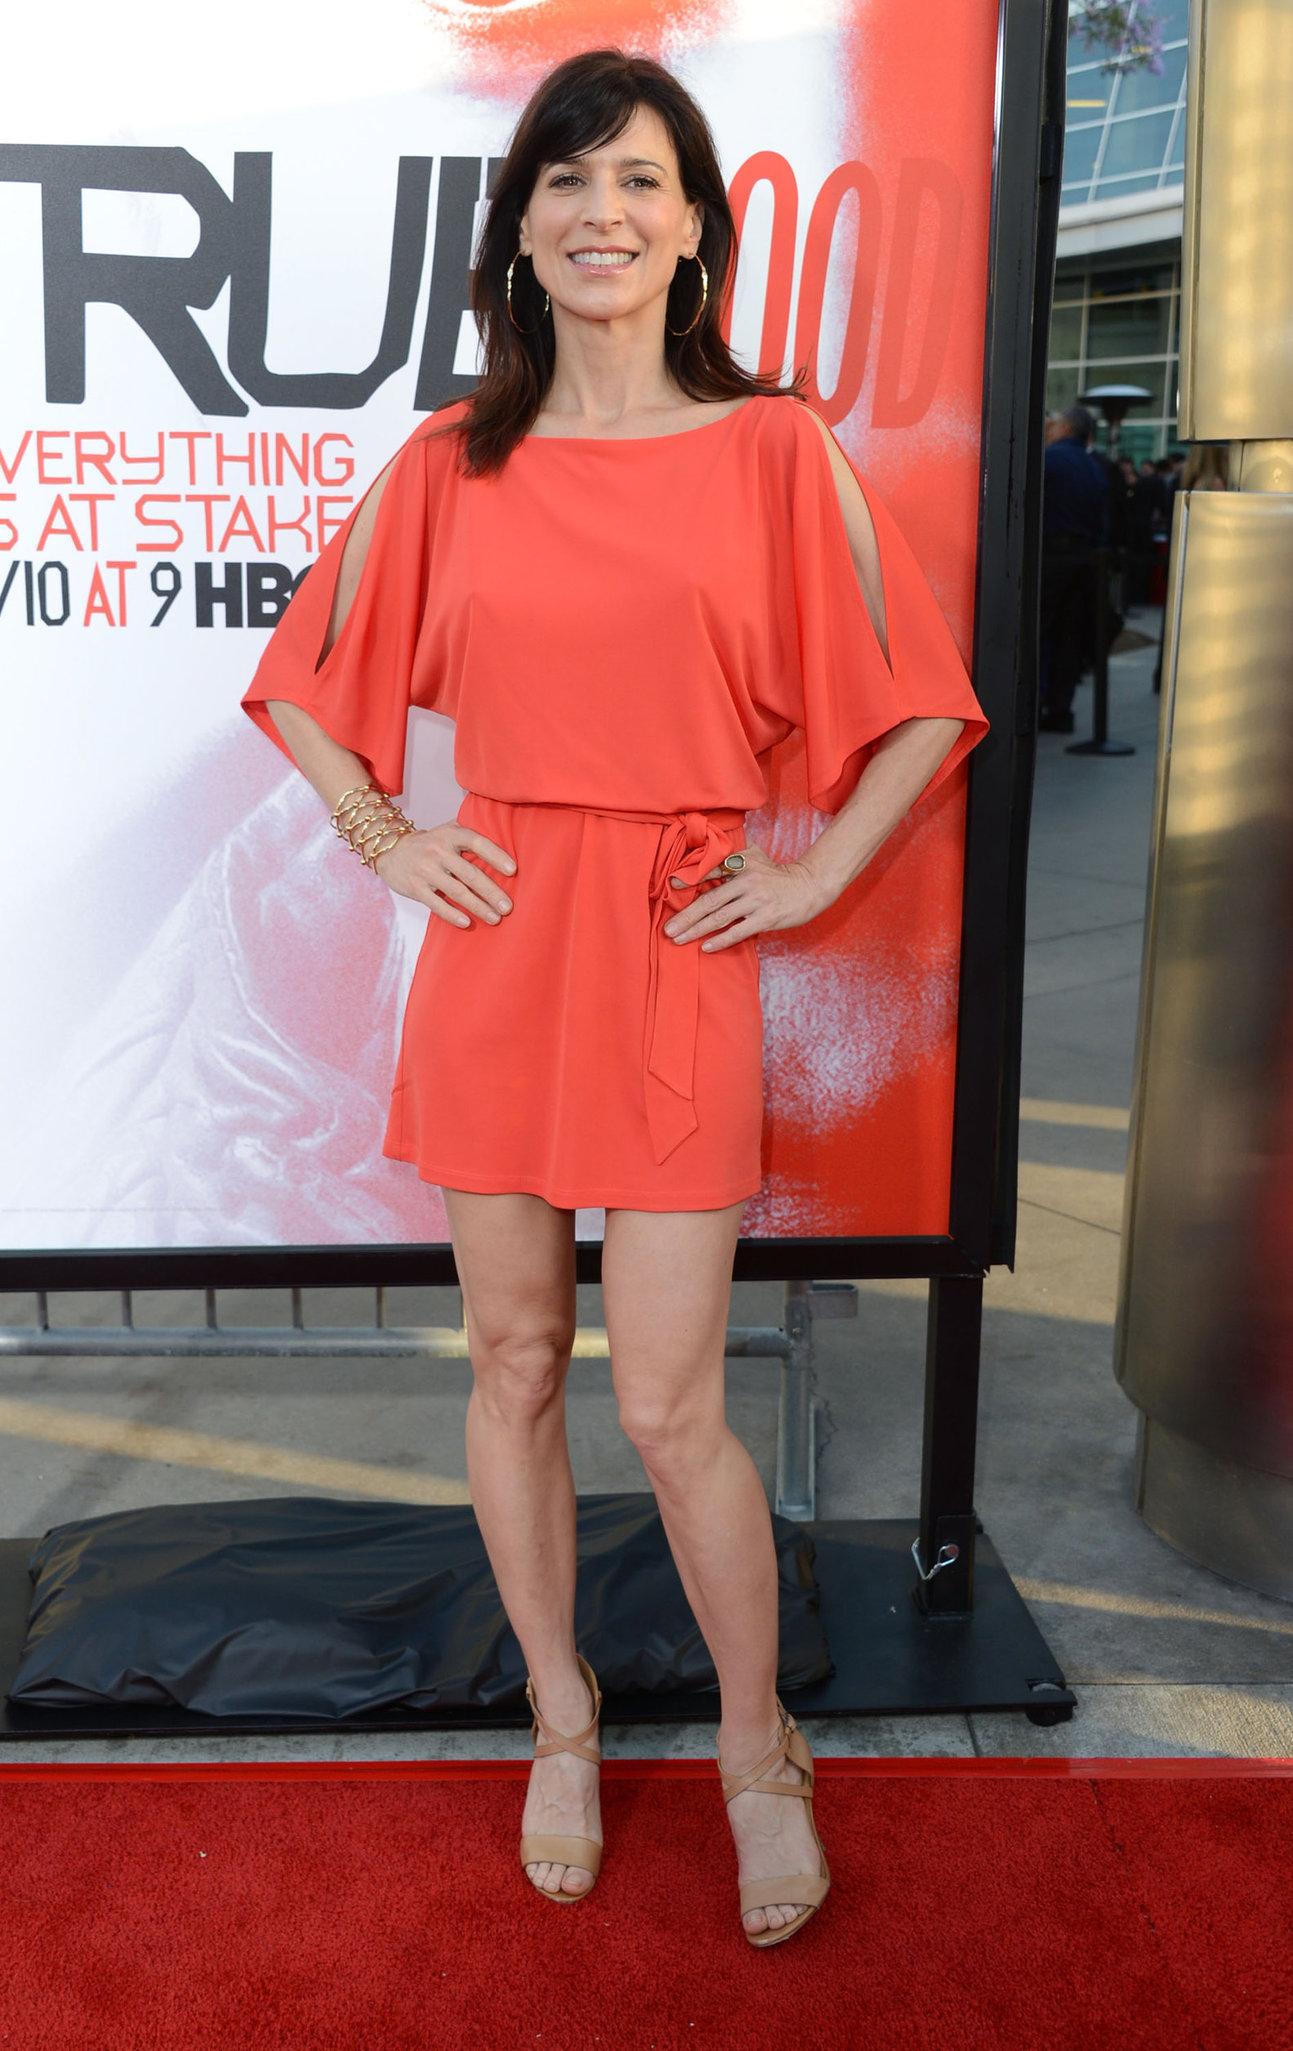 Perrey Reeves - True Blood Season 5 premiere in Los Angeles (May 30, 2012)